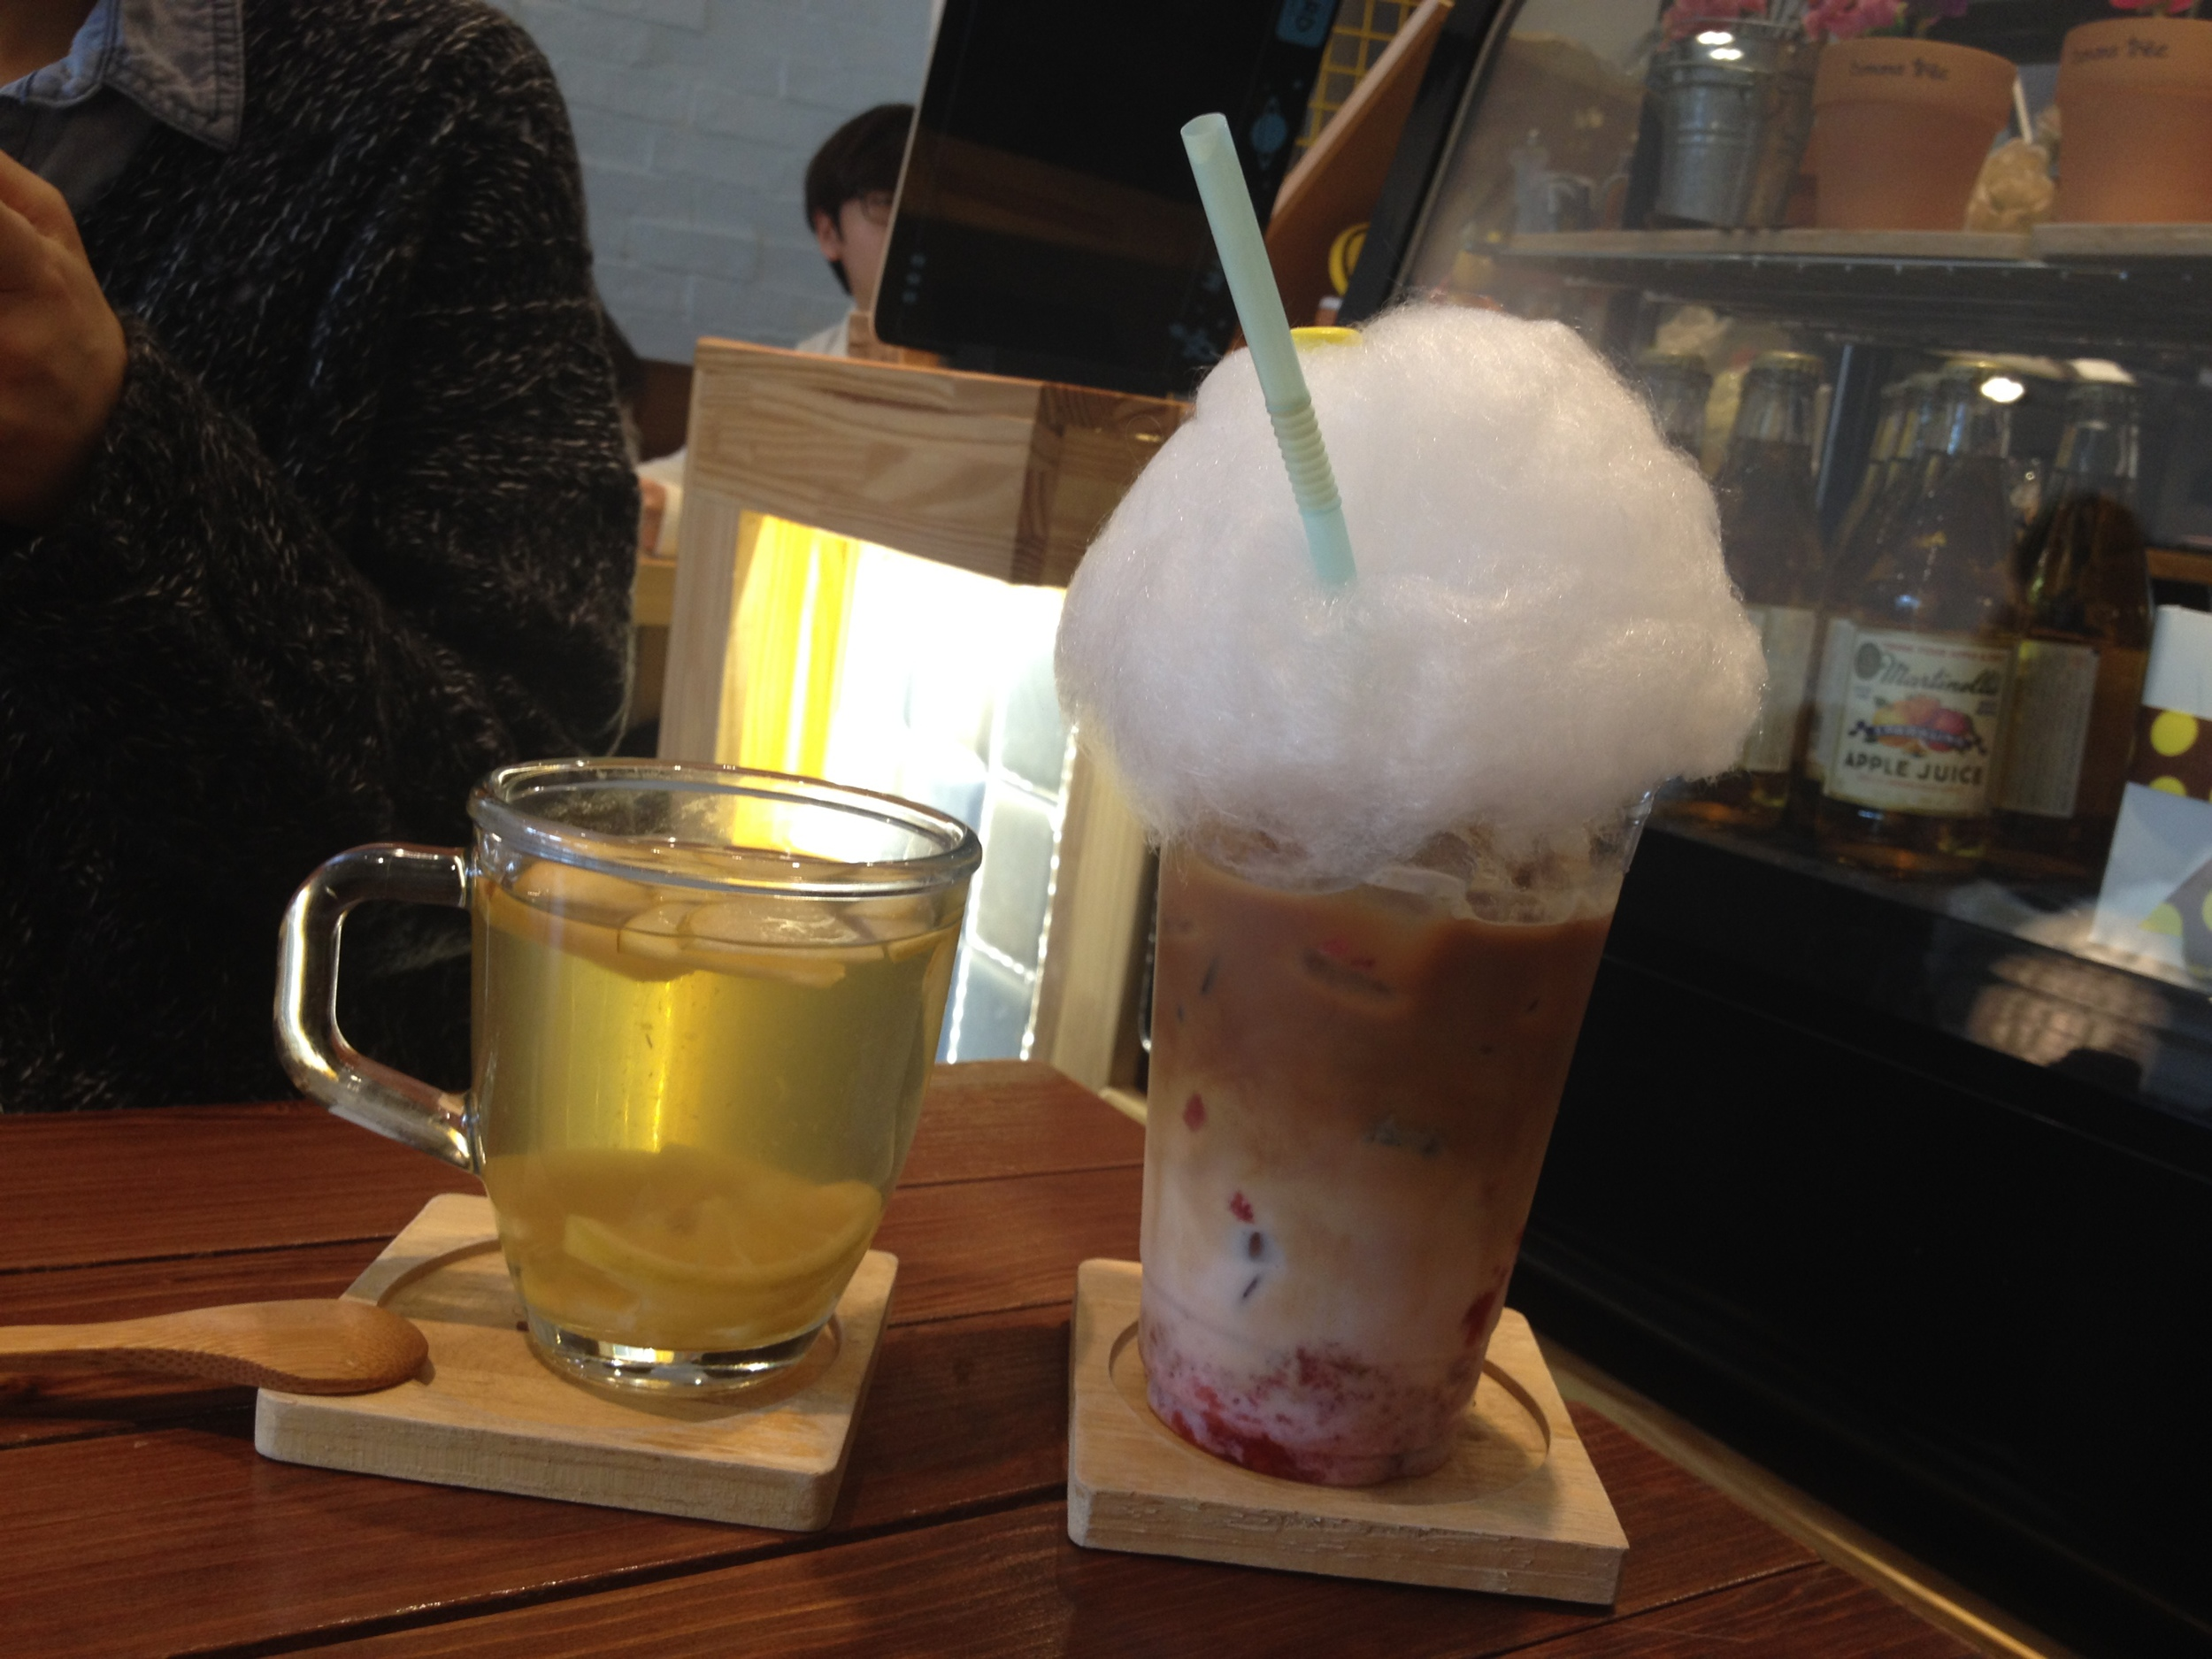 They have other dessert items on the menu but I have yet to try them. Their other drink selection that is interesting is their 솜사탕라때 (SomSaTang Latte) - Cotten Candy Latte! You can get different flavours, and I got strawberry. They had chunks of real strawberry in there so it was like a latte with strawberry milk with real fruit bits in it.